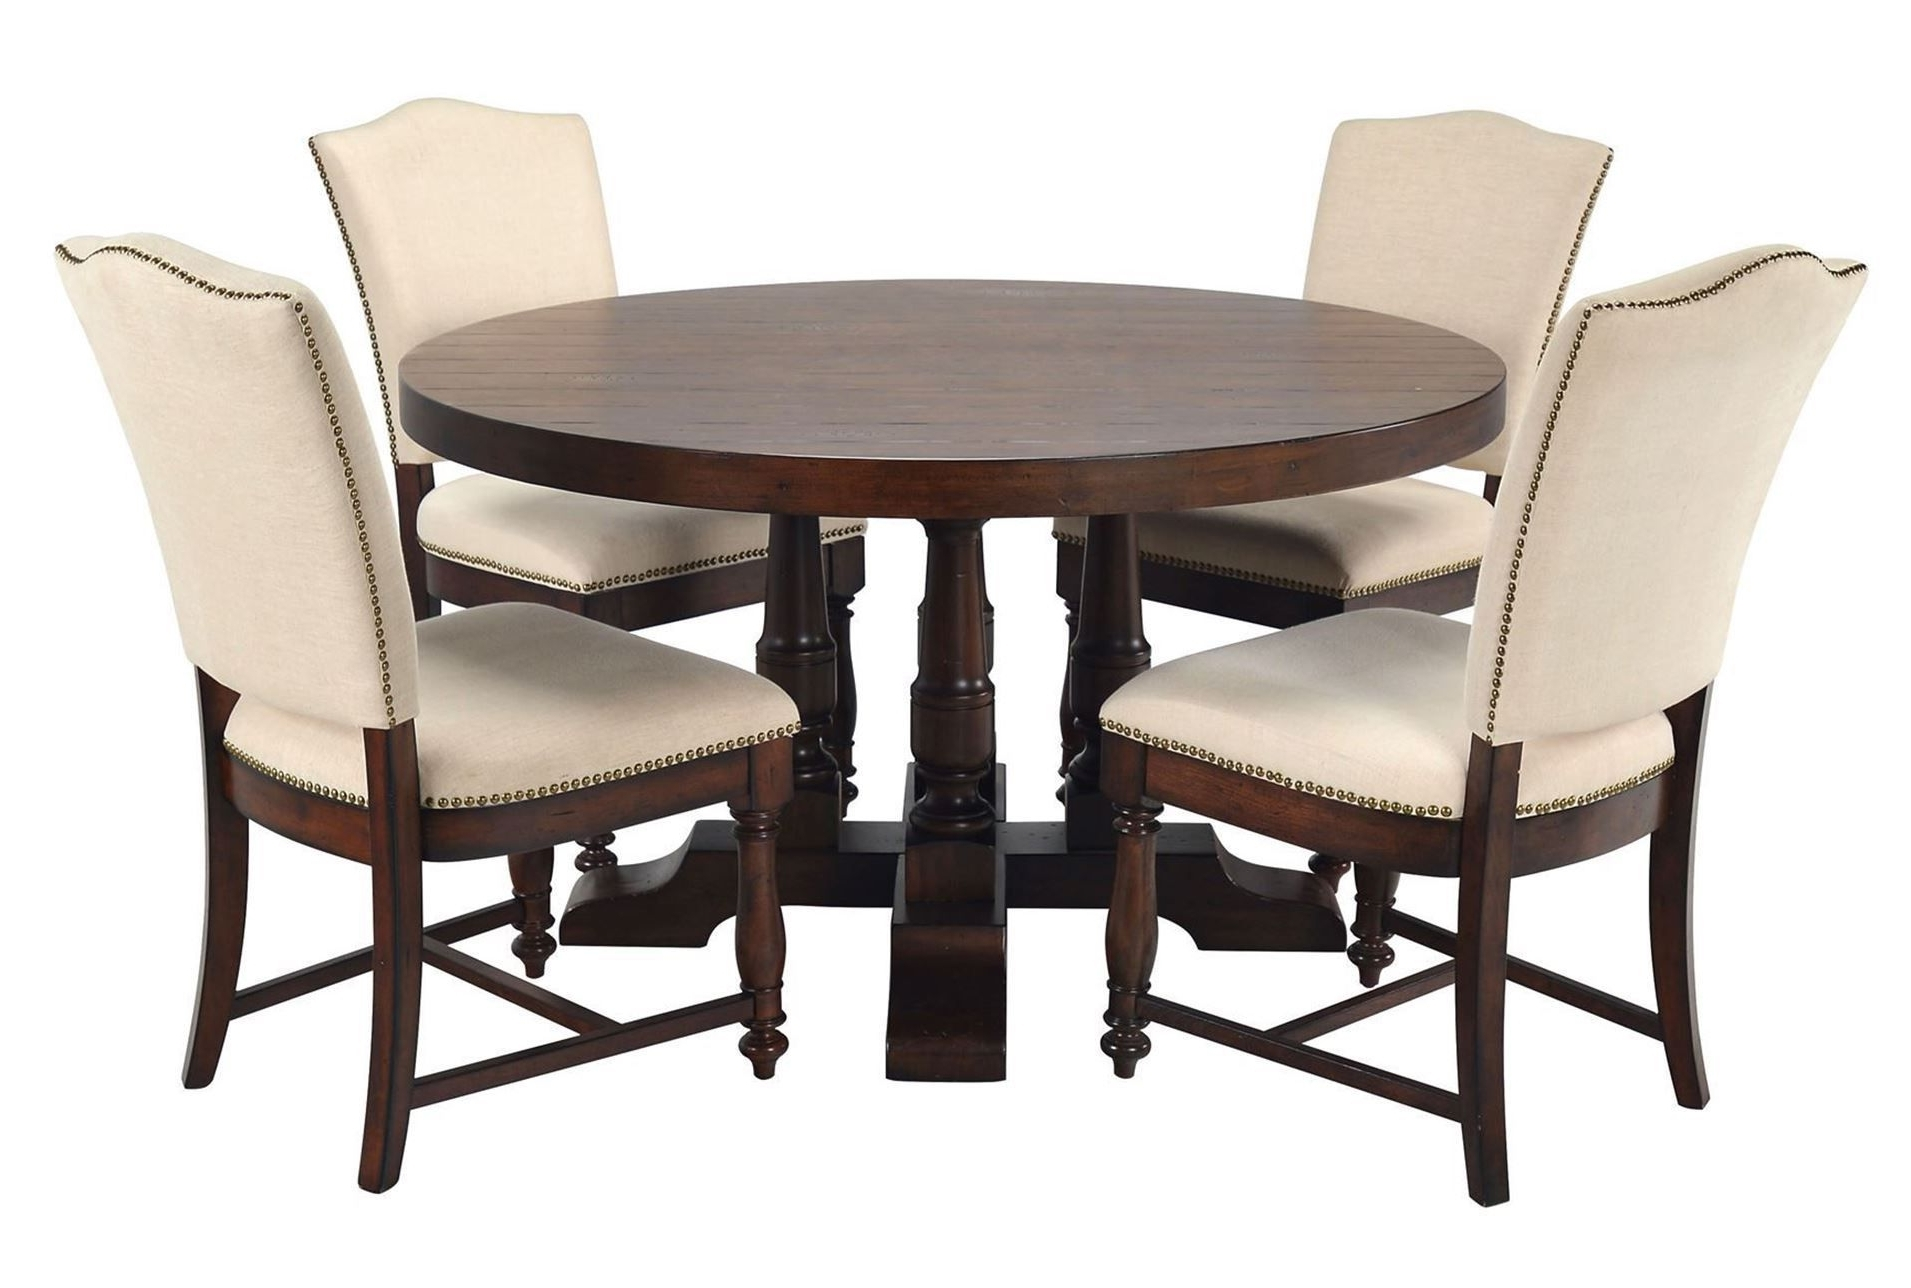 Jayanand Home for Macie 5 Piece Round Dining Sets